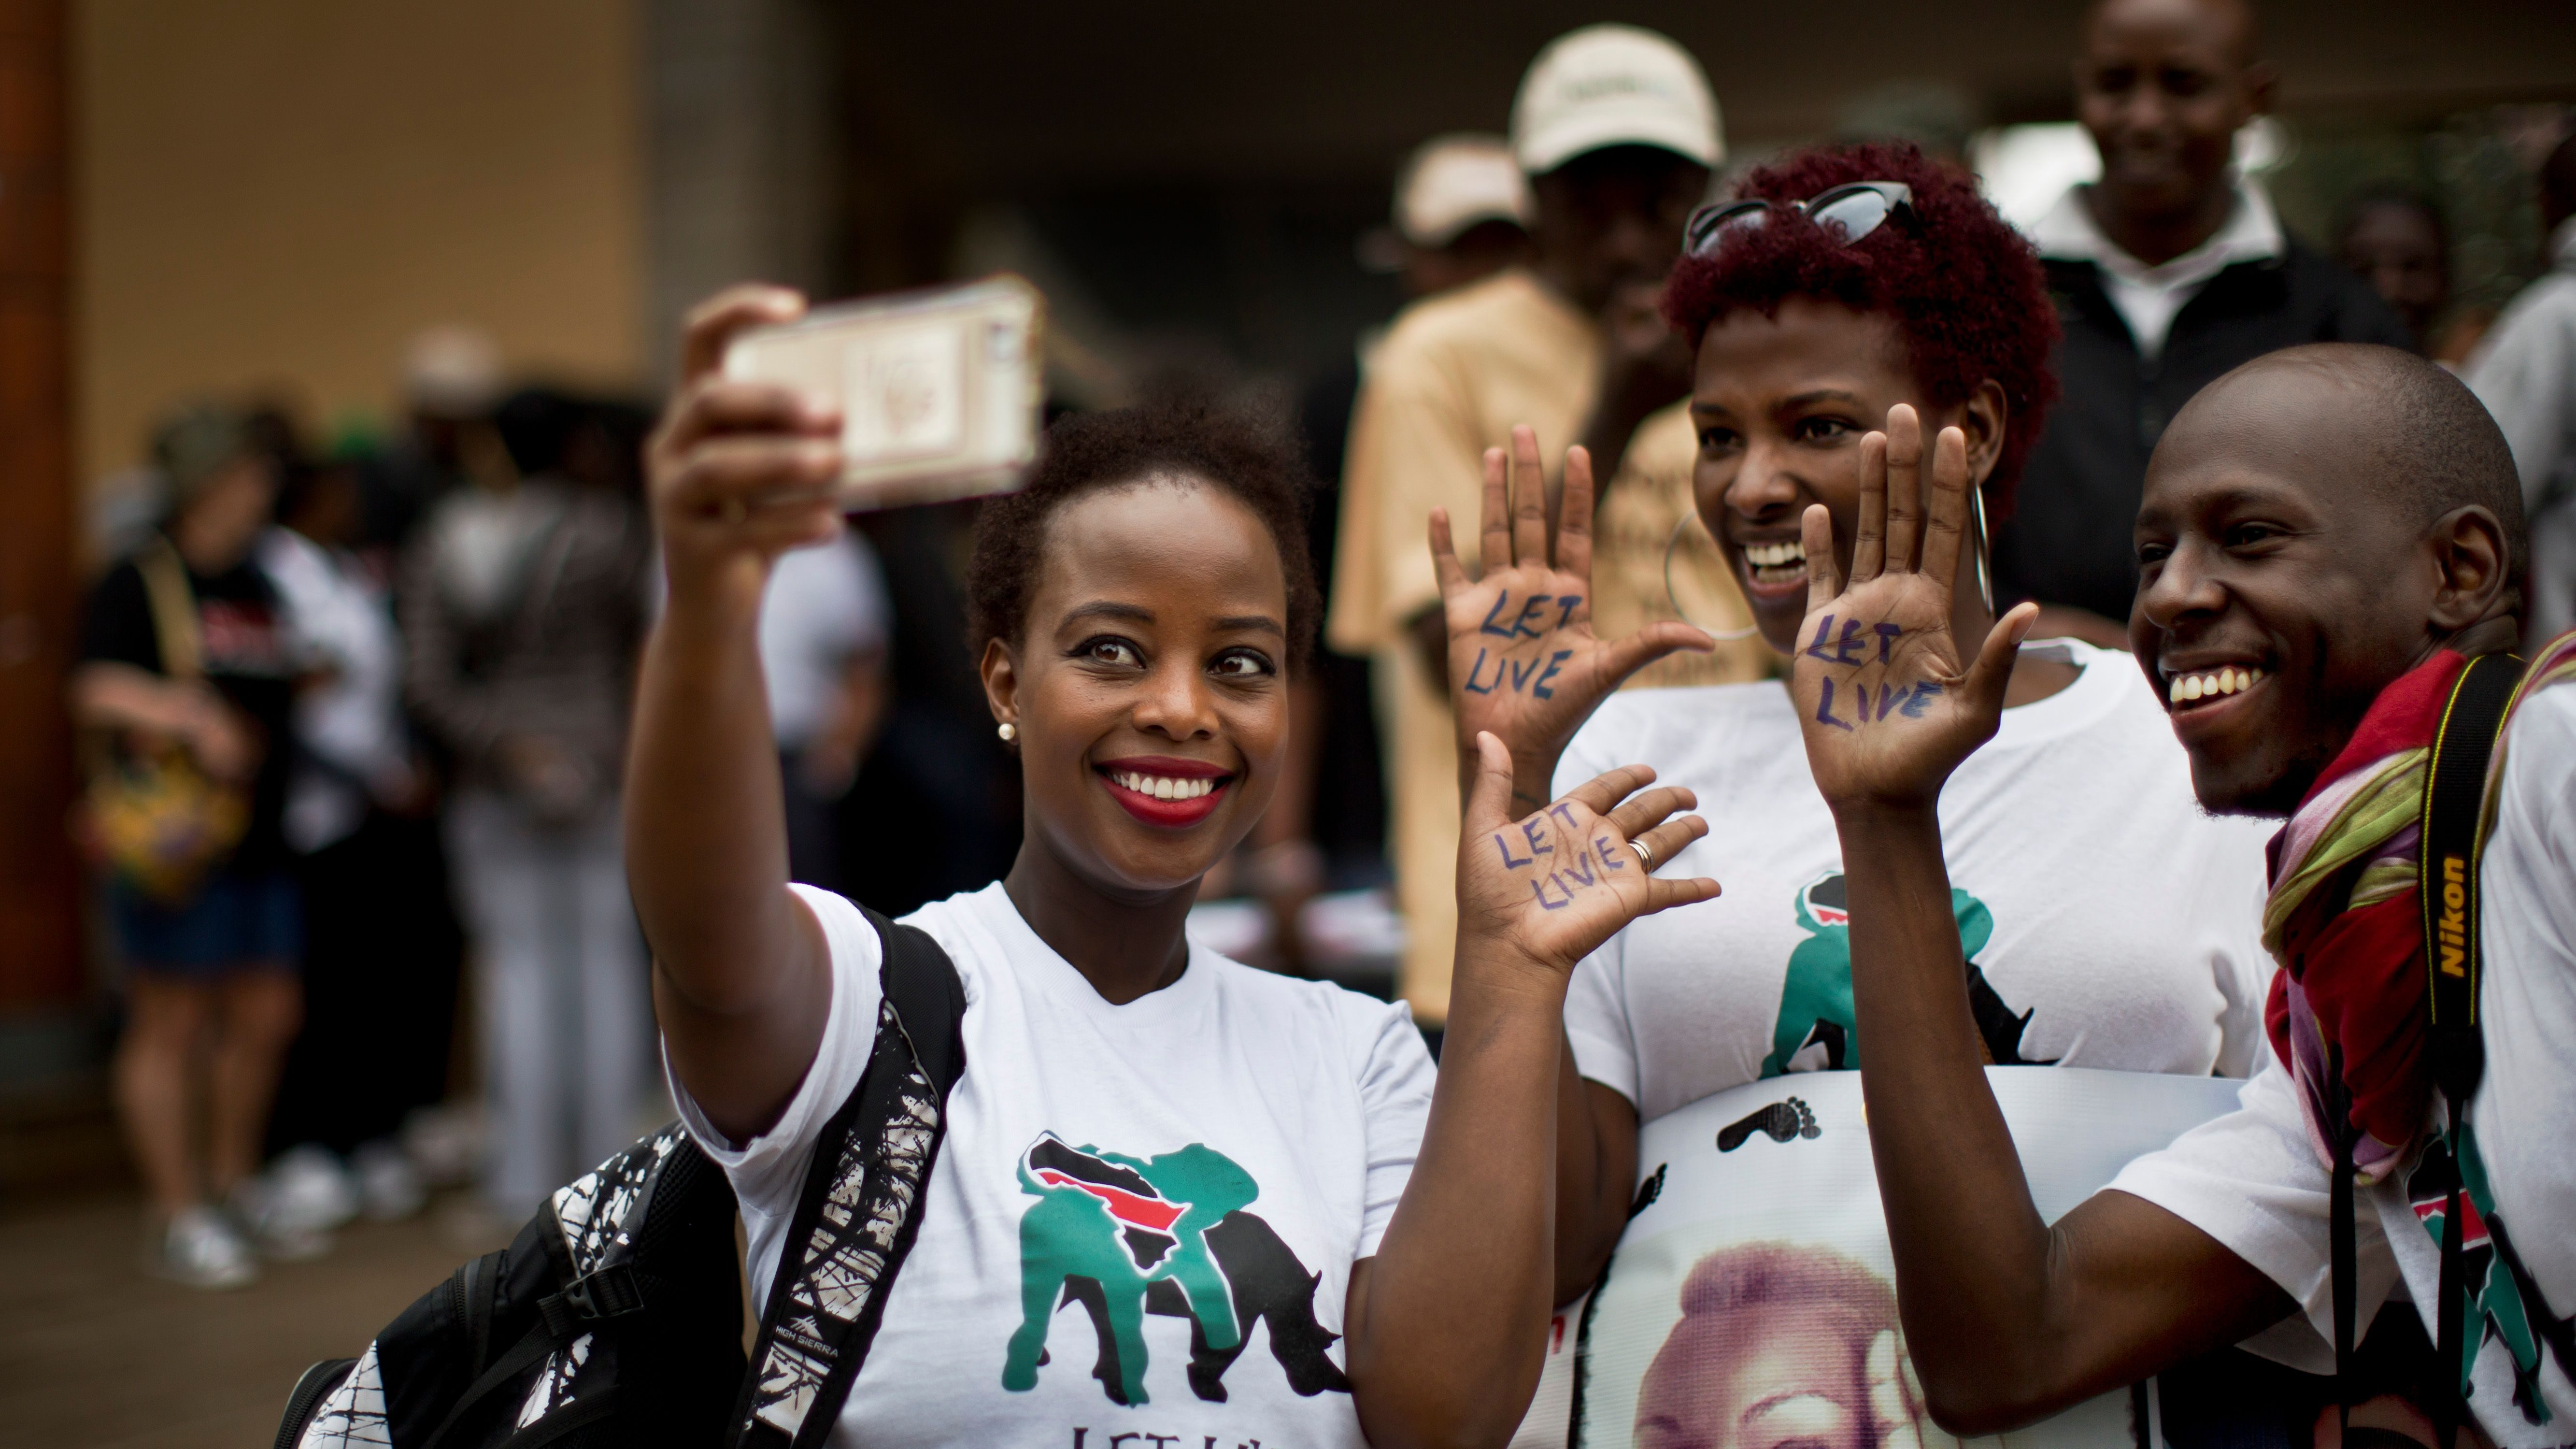 """Demonstrators take a """"selfie"""" with their smartphone and display the message """"Let Live"""" on the palms of their hands as they take part in the """"Global March for Elephants and Rhinos"""" to raise awareness for their plight, in Nairobi, Kenya Saturday, Oct. 4, 2014. Organisers of the global march, which they hope will take place in over 100 cities across the world, say it is a collaboration between many wildlife conservation organisations aiming to save elephants and rhinos from extinction by poachers and call for a ban on the trade of ivory and rhino horn."""